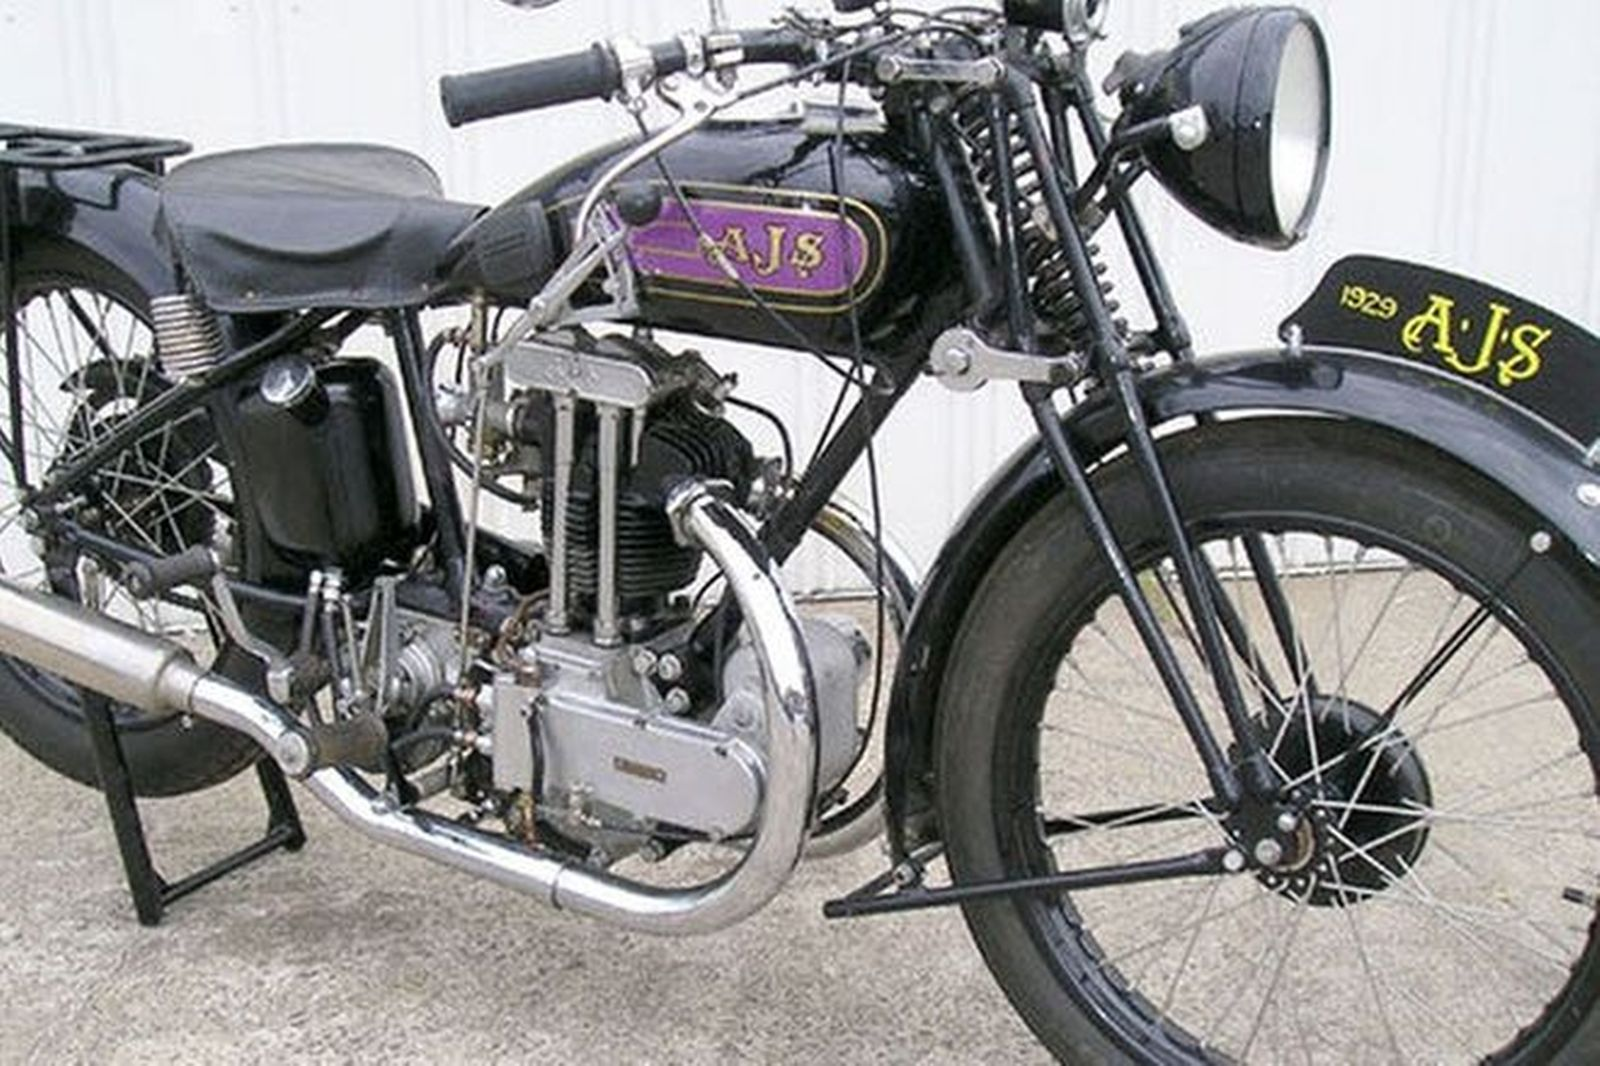 AJS 350cc 'Purple Tank' Motorcycle